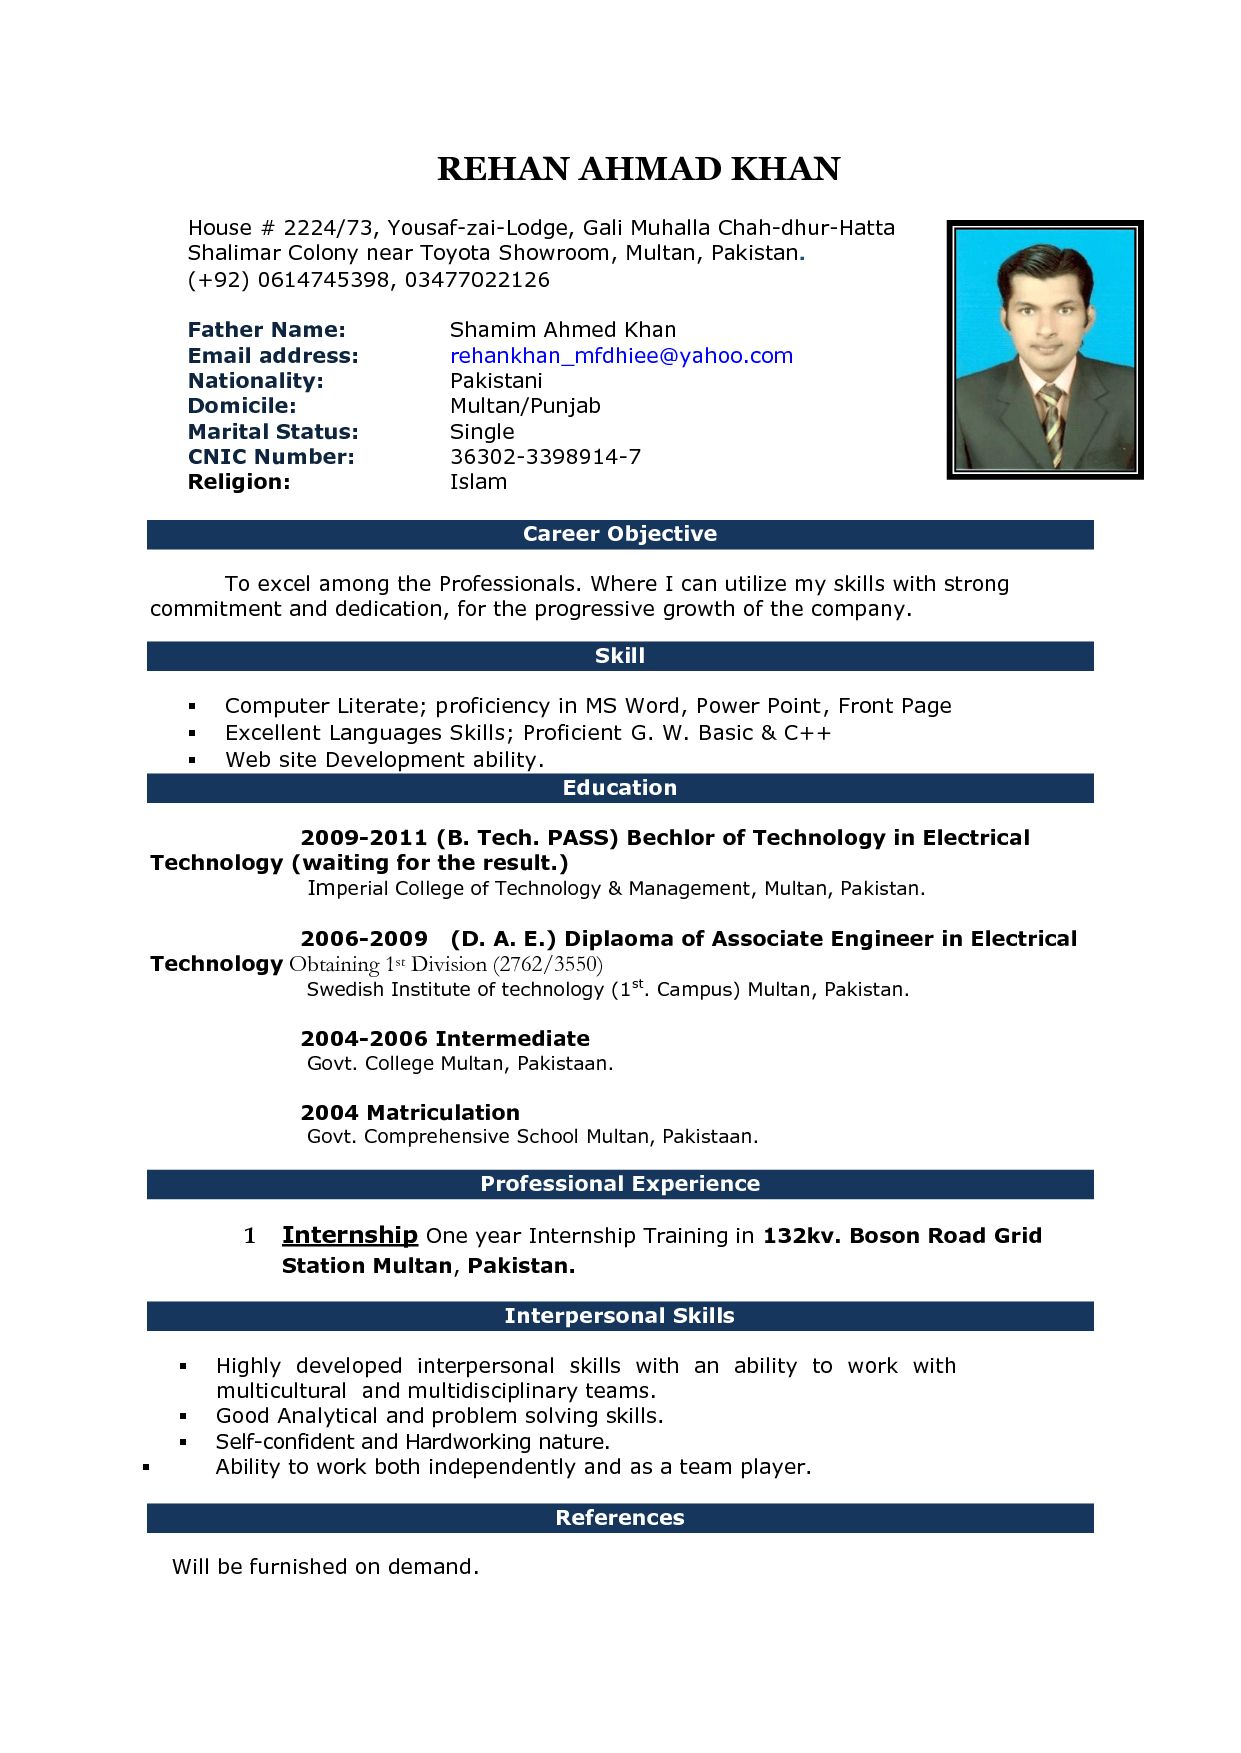 cv sample ms word format